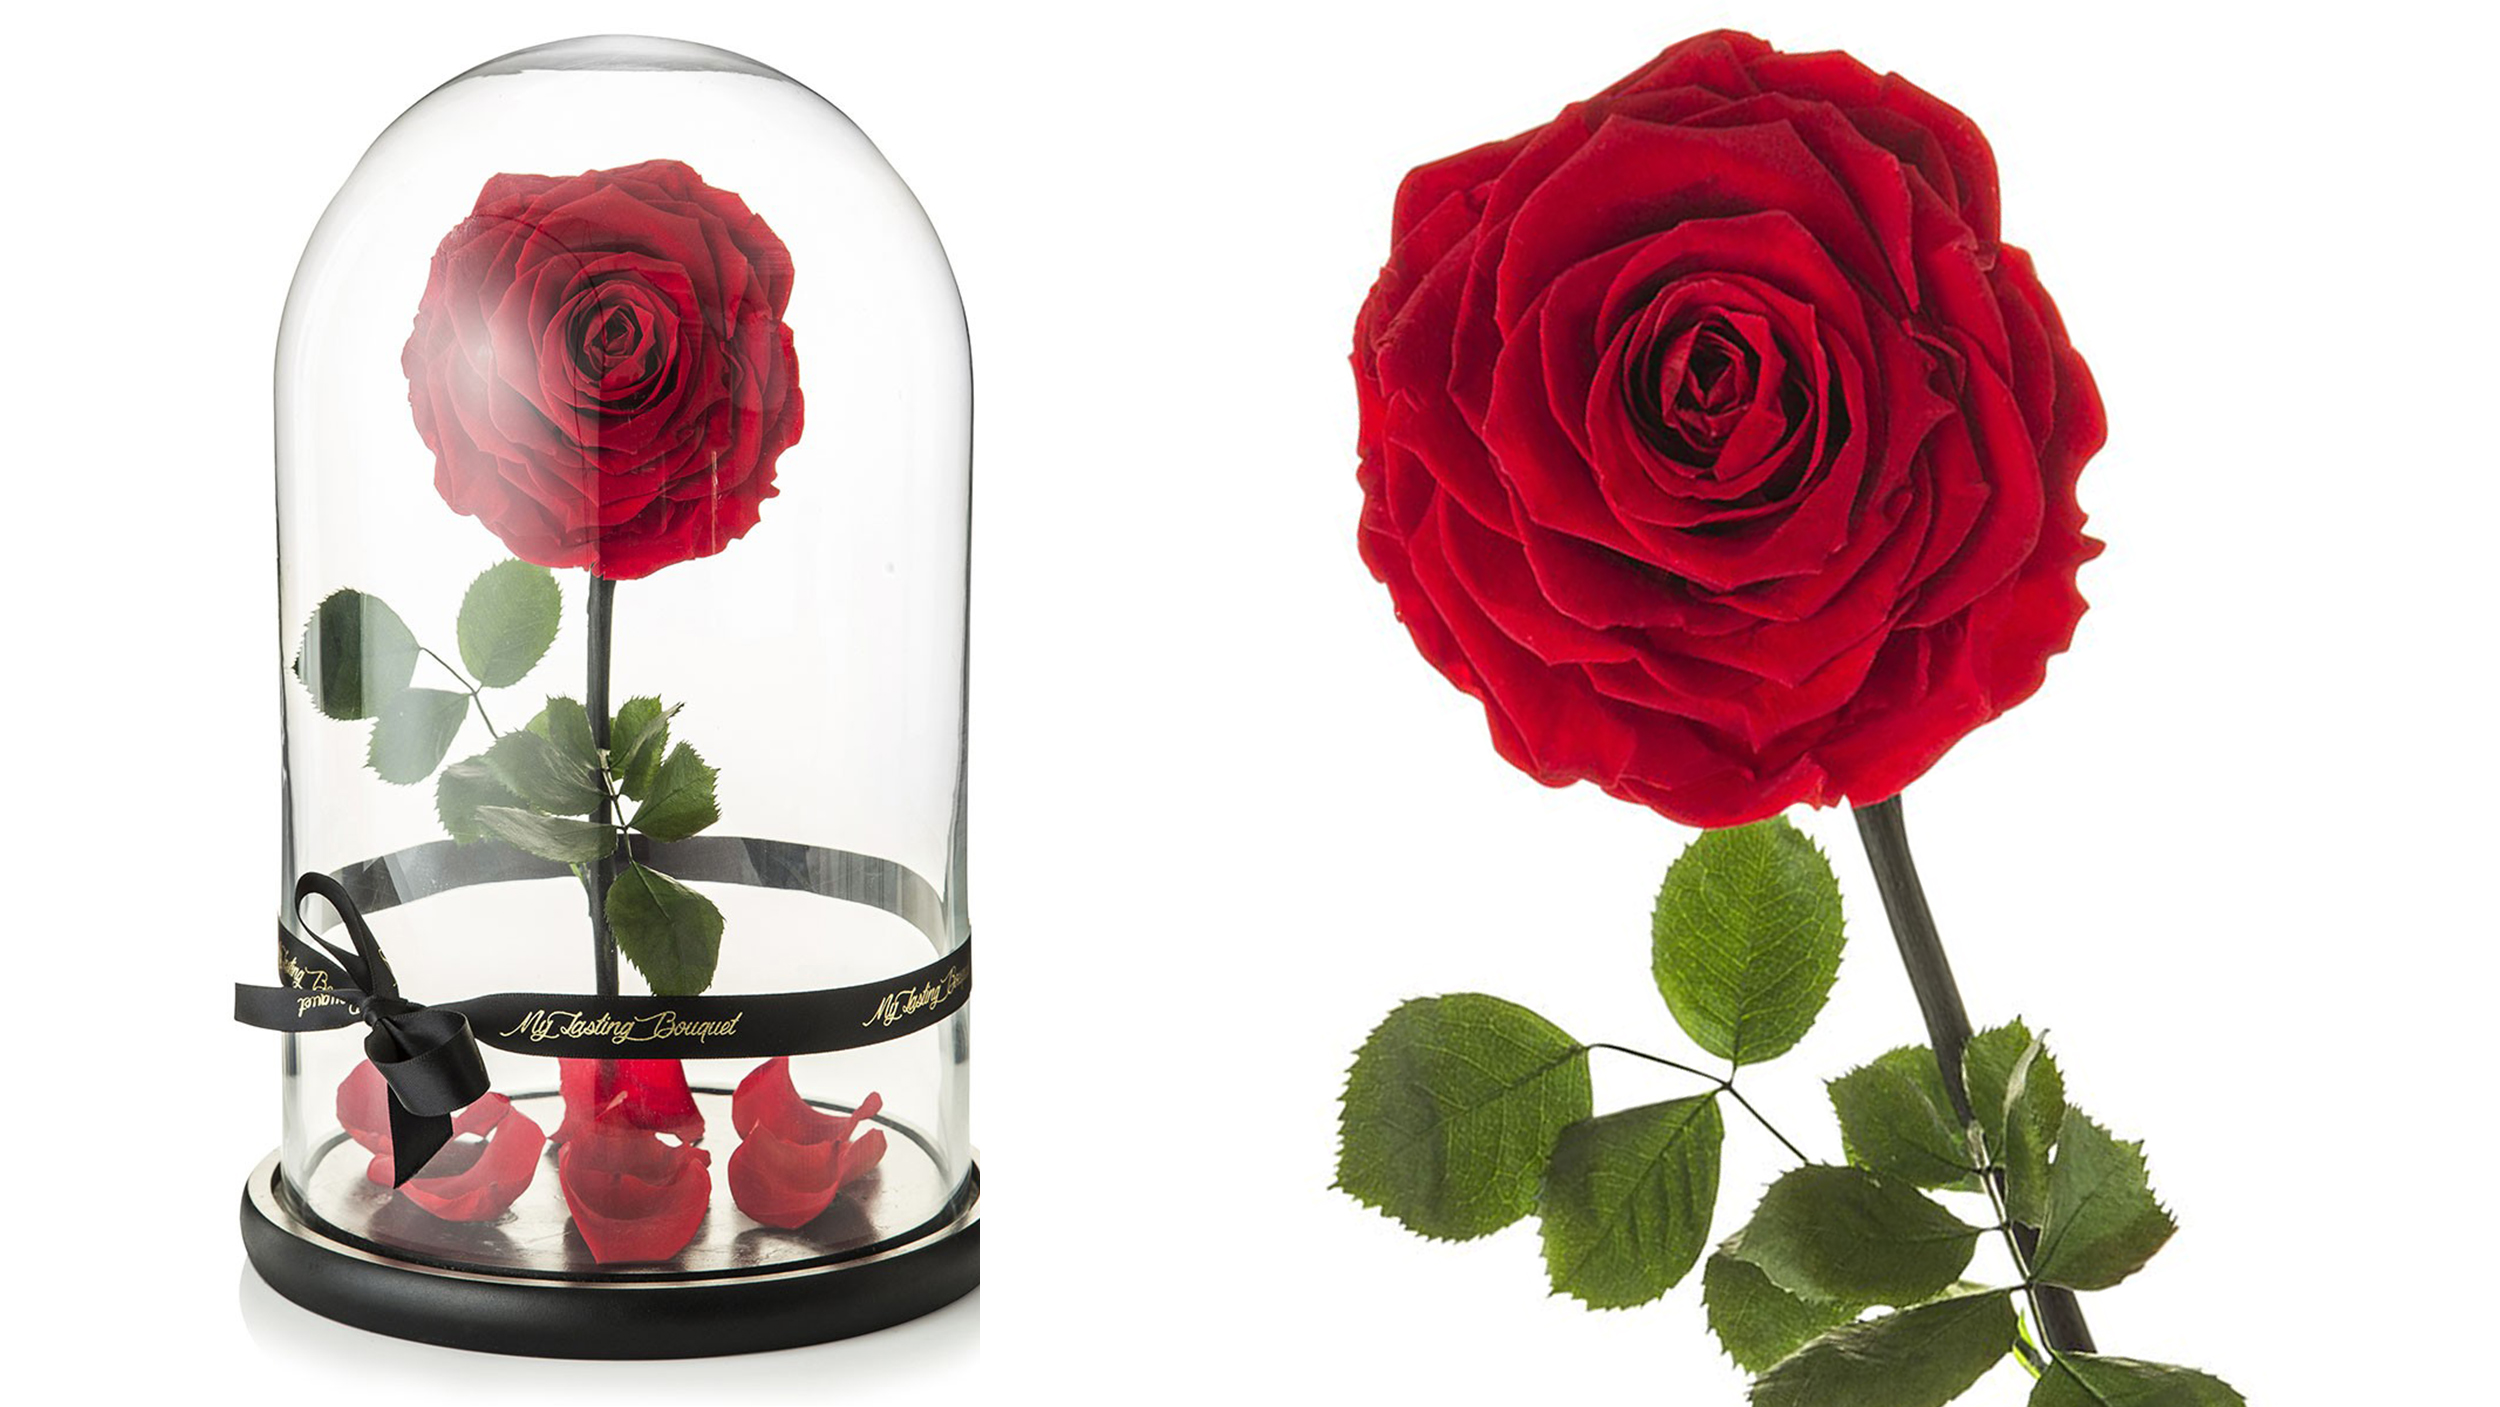 'Beauty and the Beast' rose in dome for sale - TODAY.com